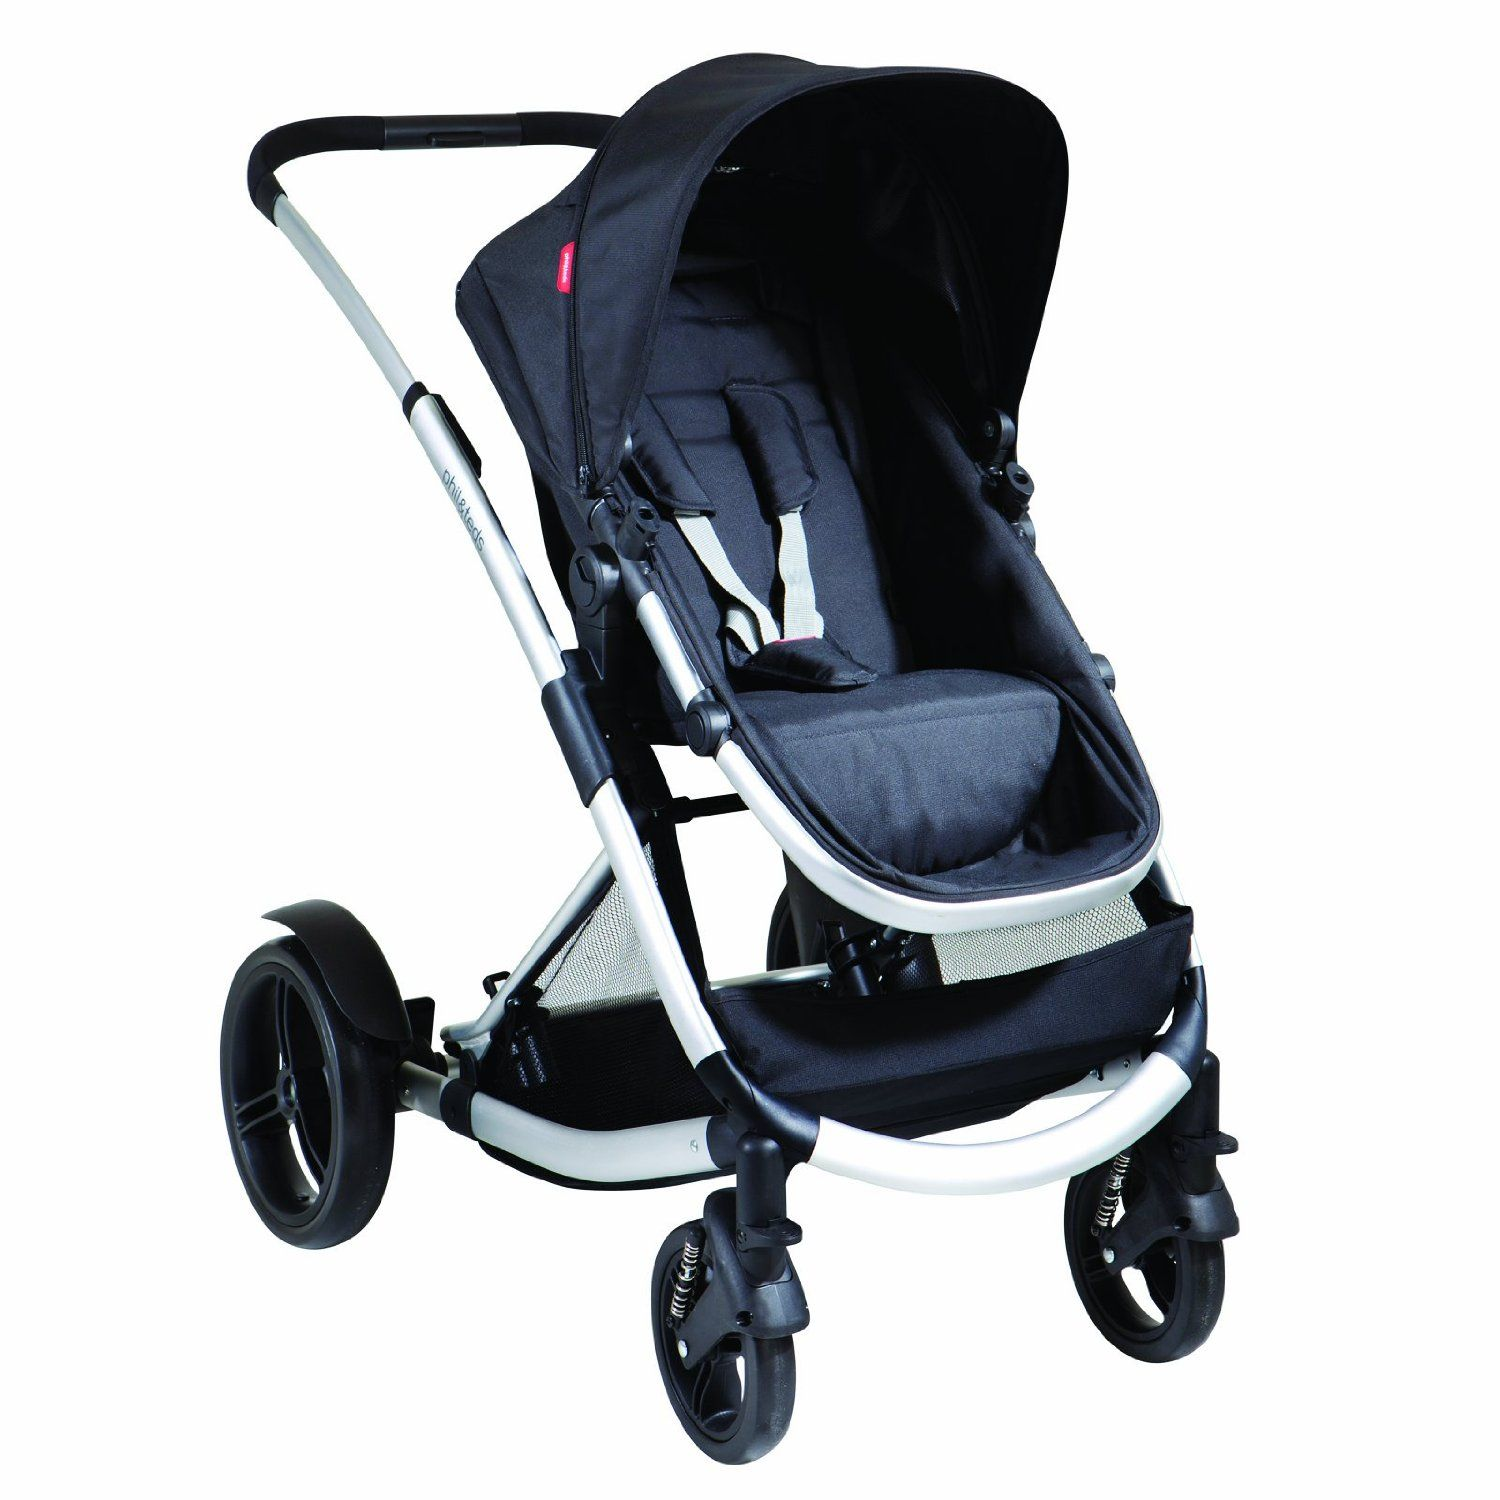 Looking for a single stroller for your cuty Best Stroller Guide offering you this black